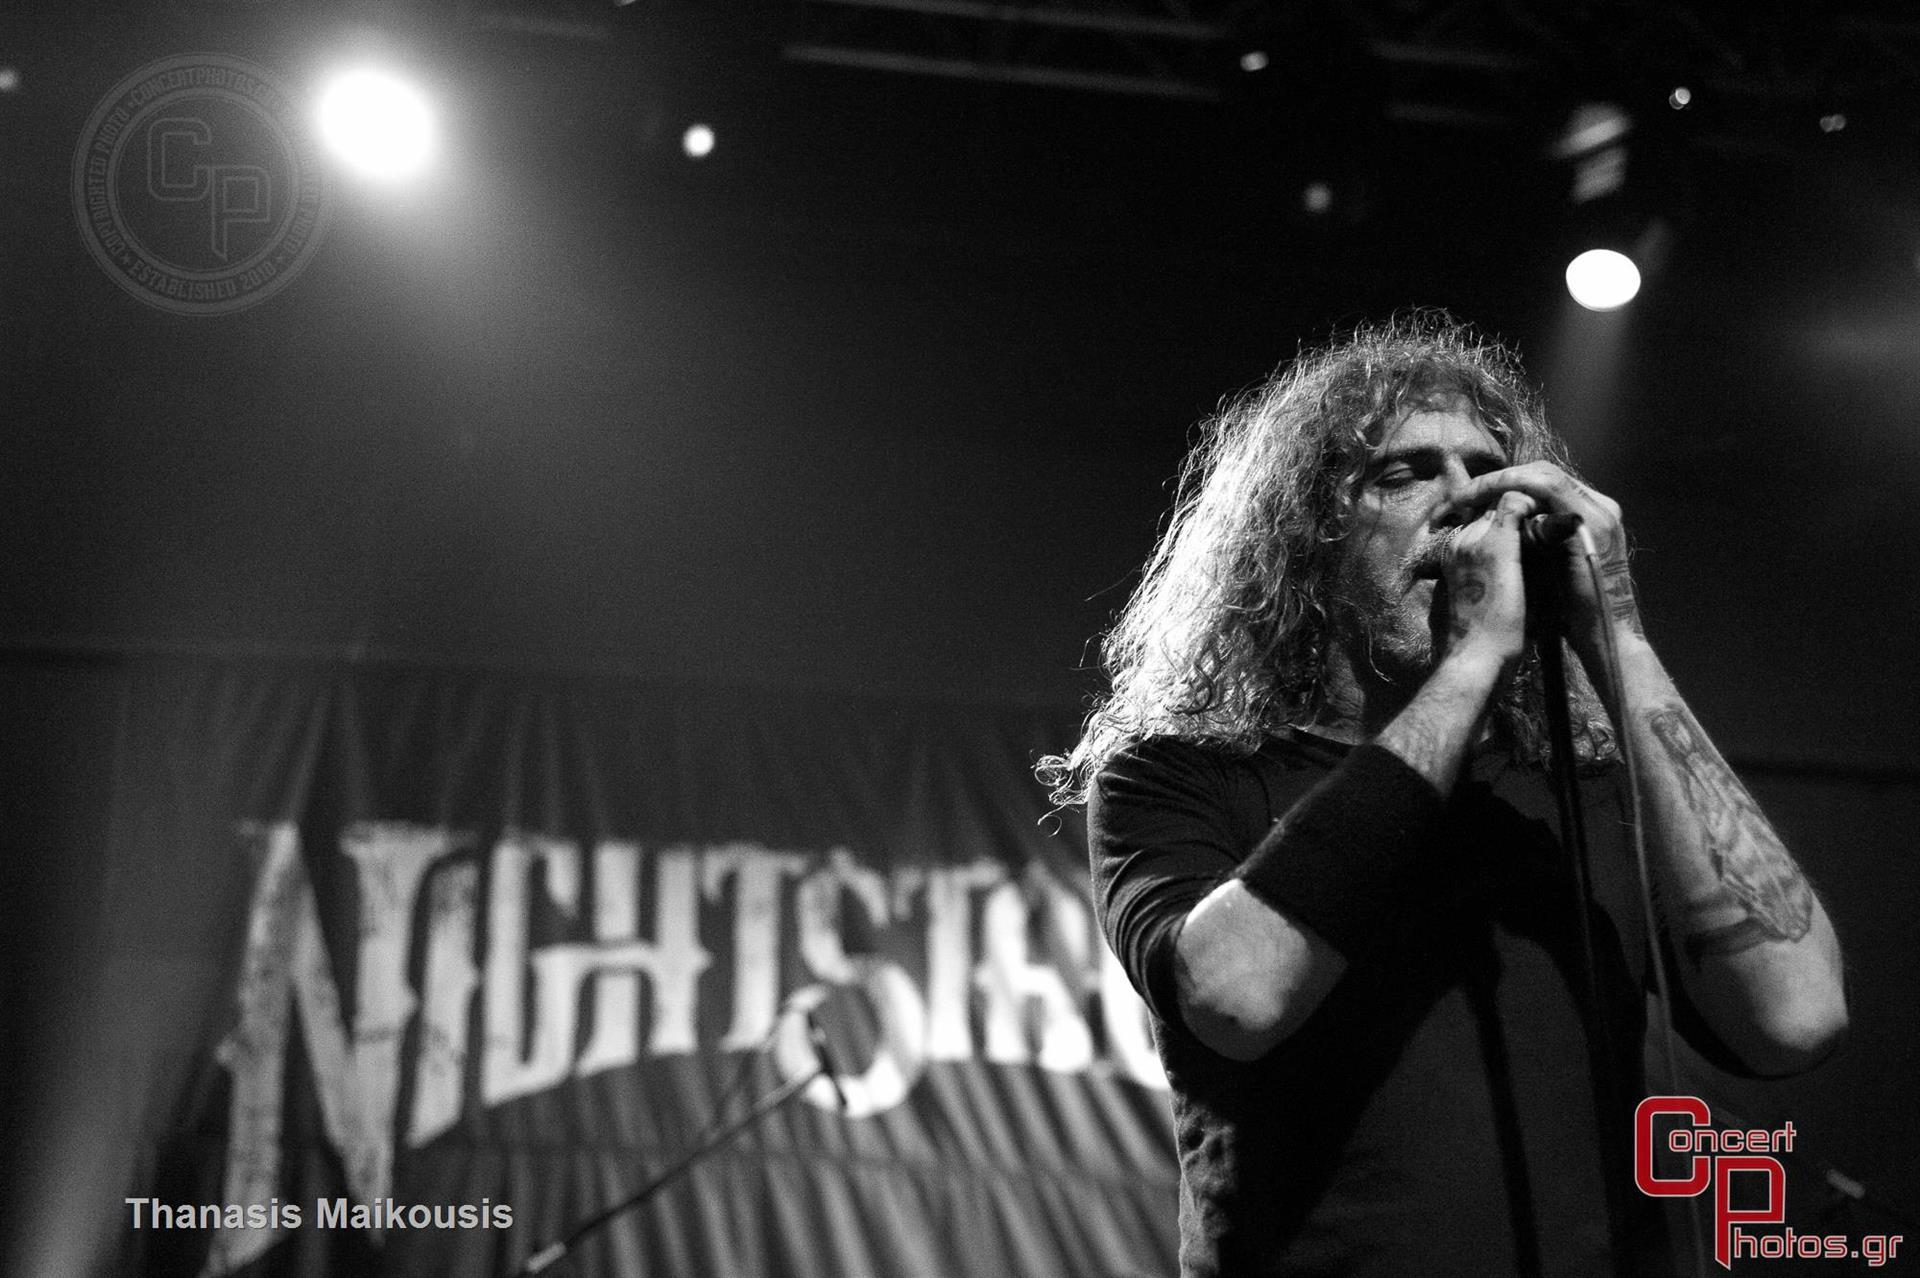 Nightstalker Three Holy Strangers-Nightstalker-Gagarin-April-2015 photographer: Thanasis Maikousis - ConcertPhotos - 20150425_2243_24